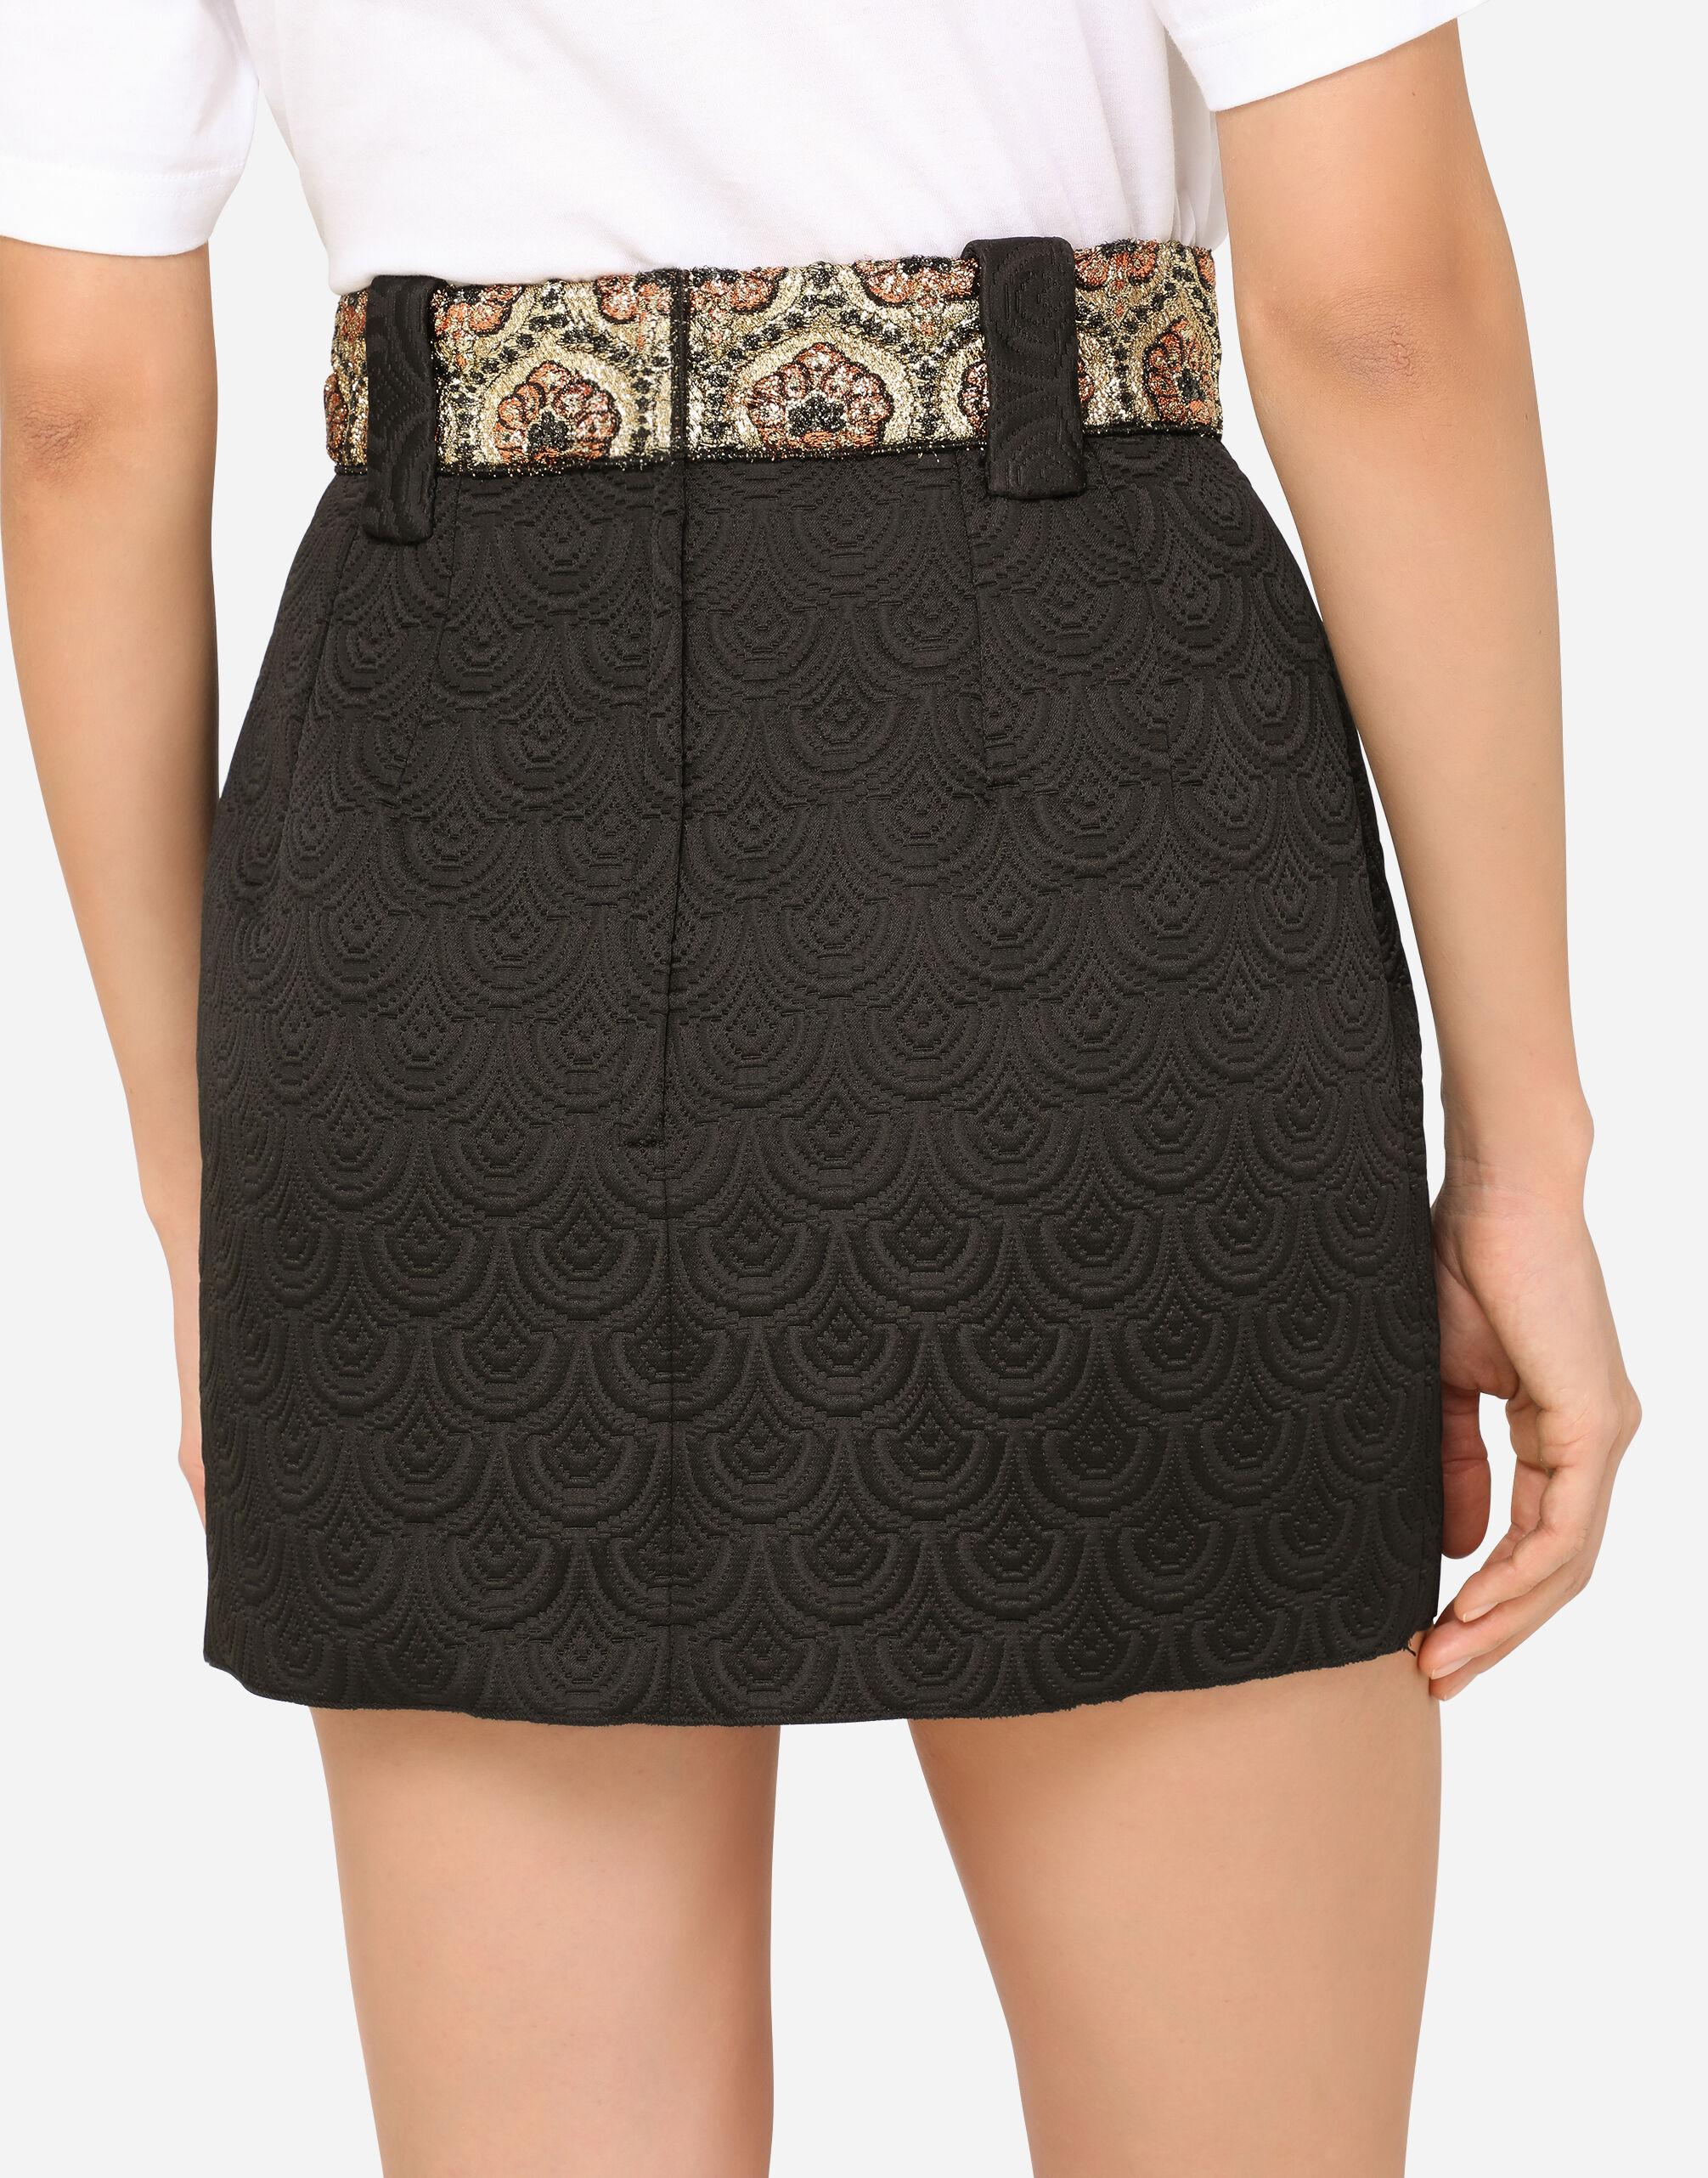 Short jacquard skirt with bejeweled buttons 3